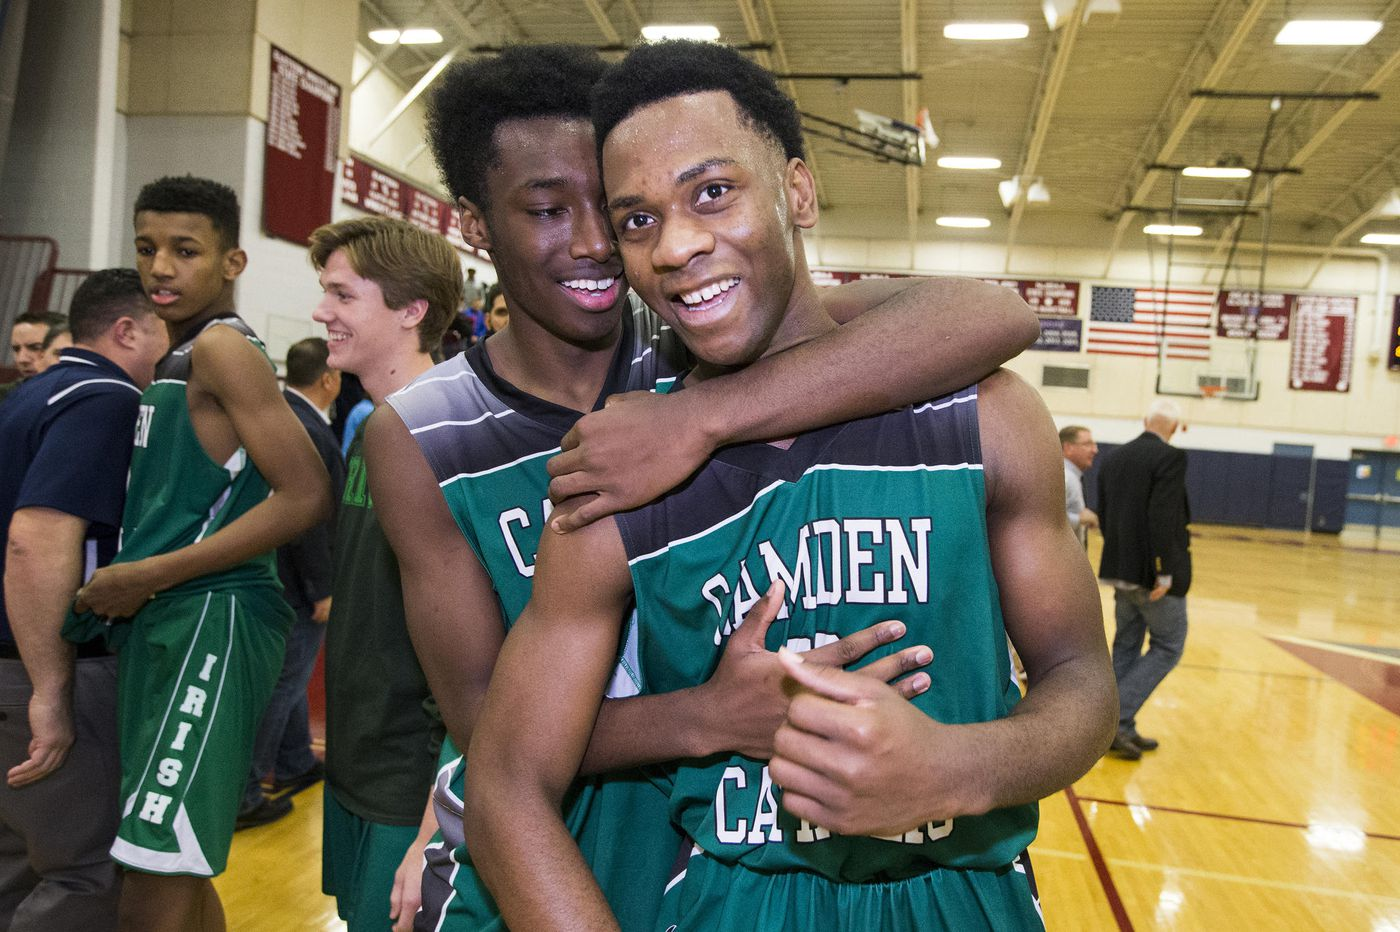 Thursday's South Jersey roundup: Uche Okafor and Zach Hicks lead Camden Catholic to a victory over Cinnaminson